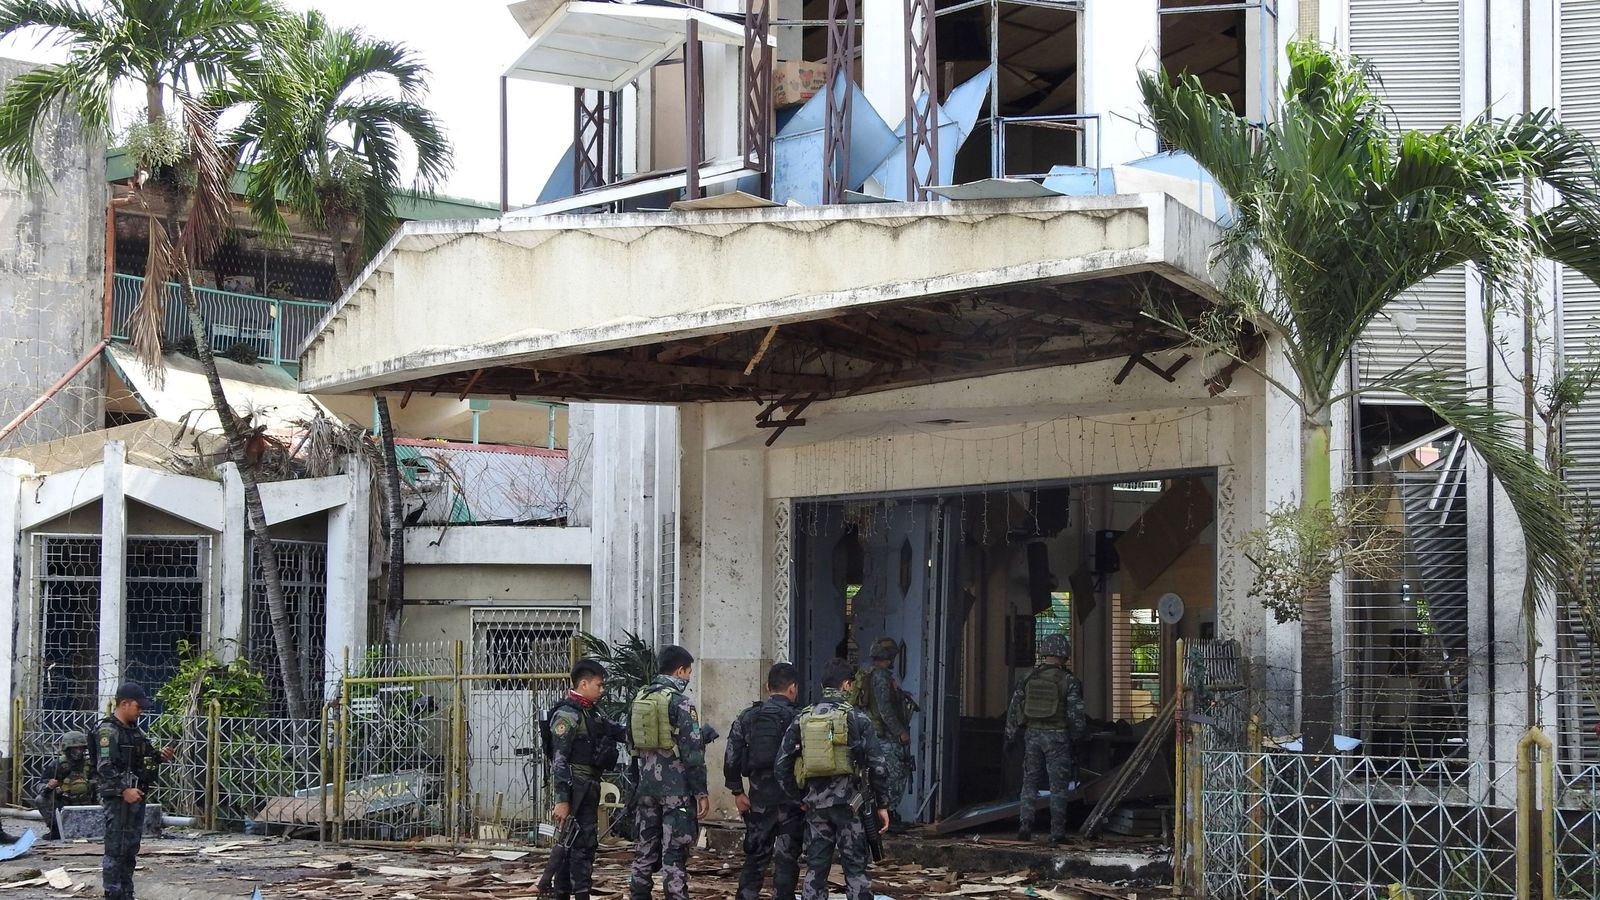 At least 20 people killed in Philippines church bombing